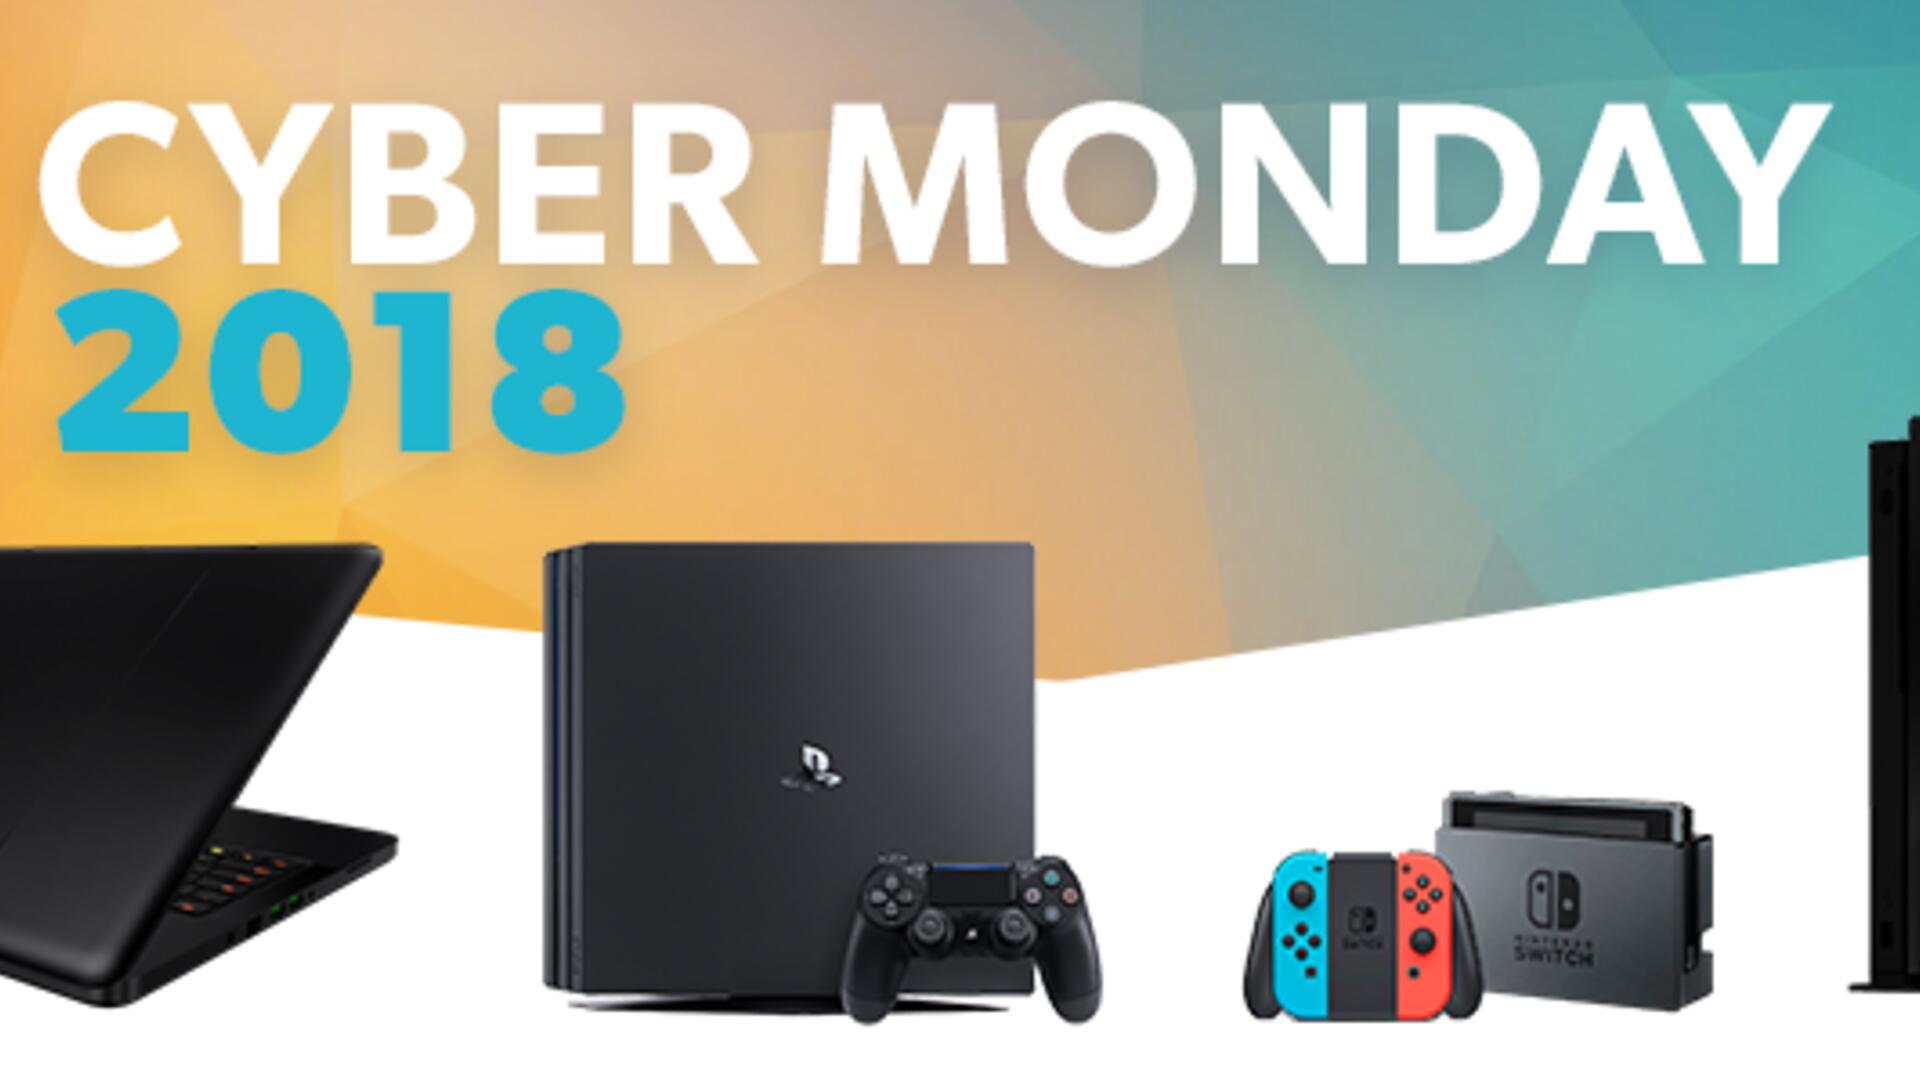 Cyber Monday Video Game Deals Roundup - All the Best PS4